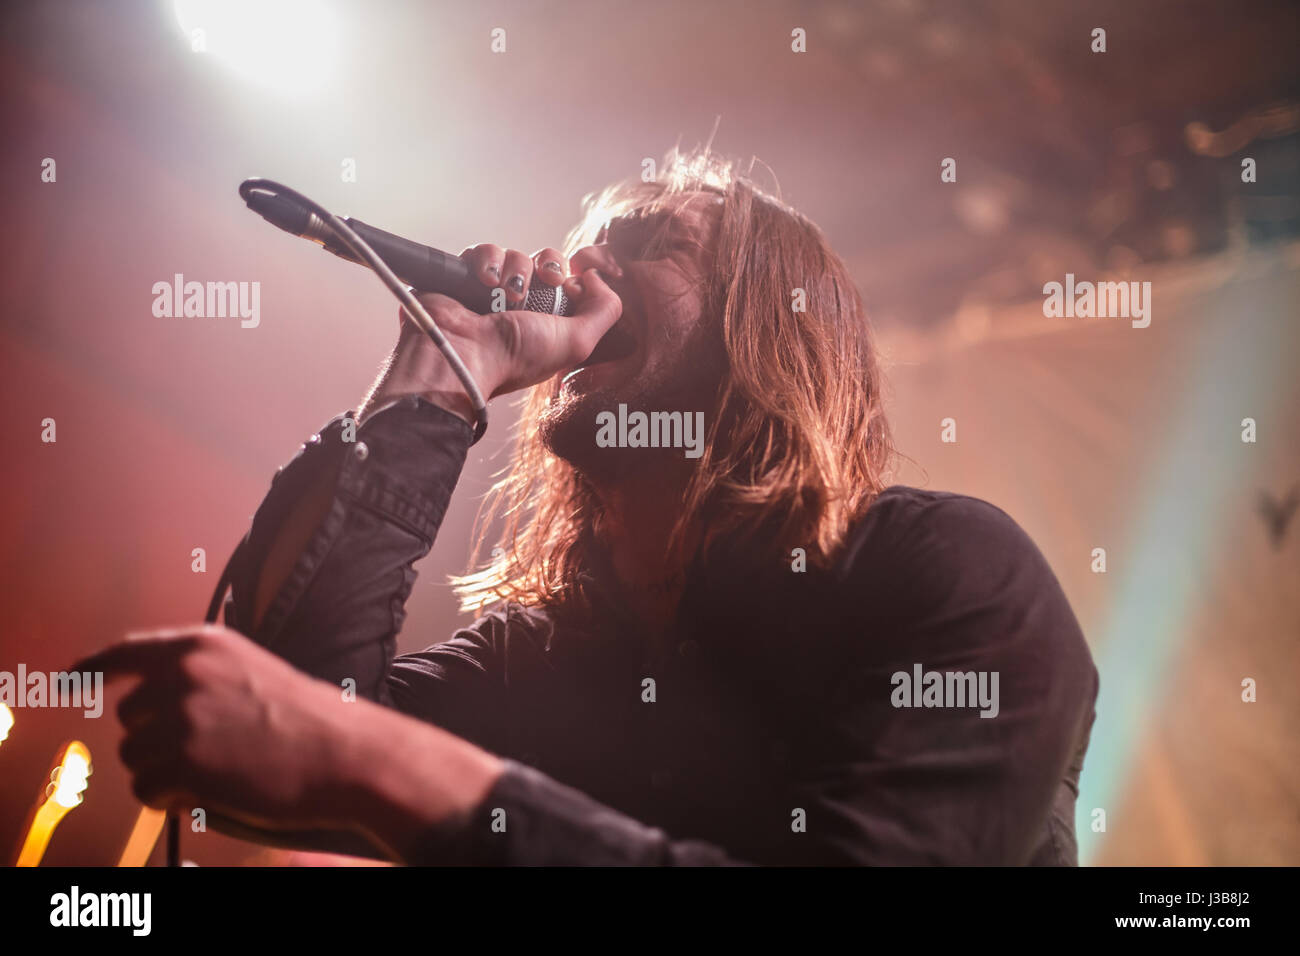 Hanley, Stoke-On-Trent, UK. 5th May, 2017. While She Sleeps perform live at The Sugarmill in Stoke. Credit: Simon - Stock Image